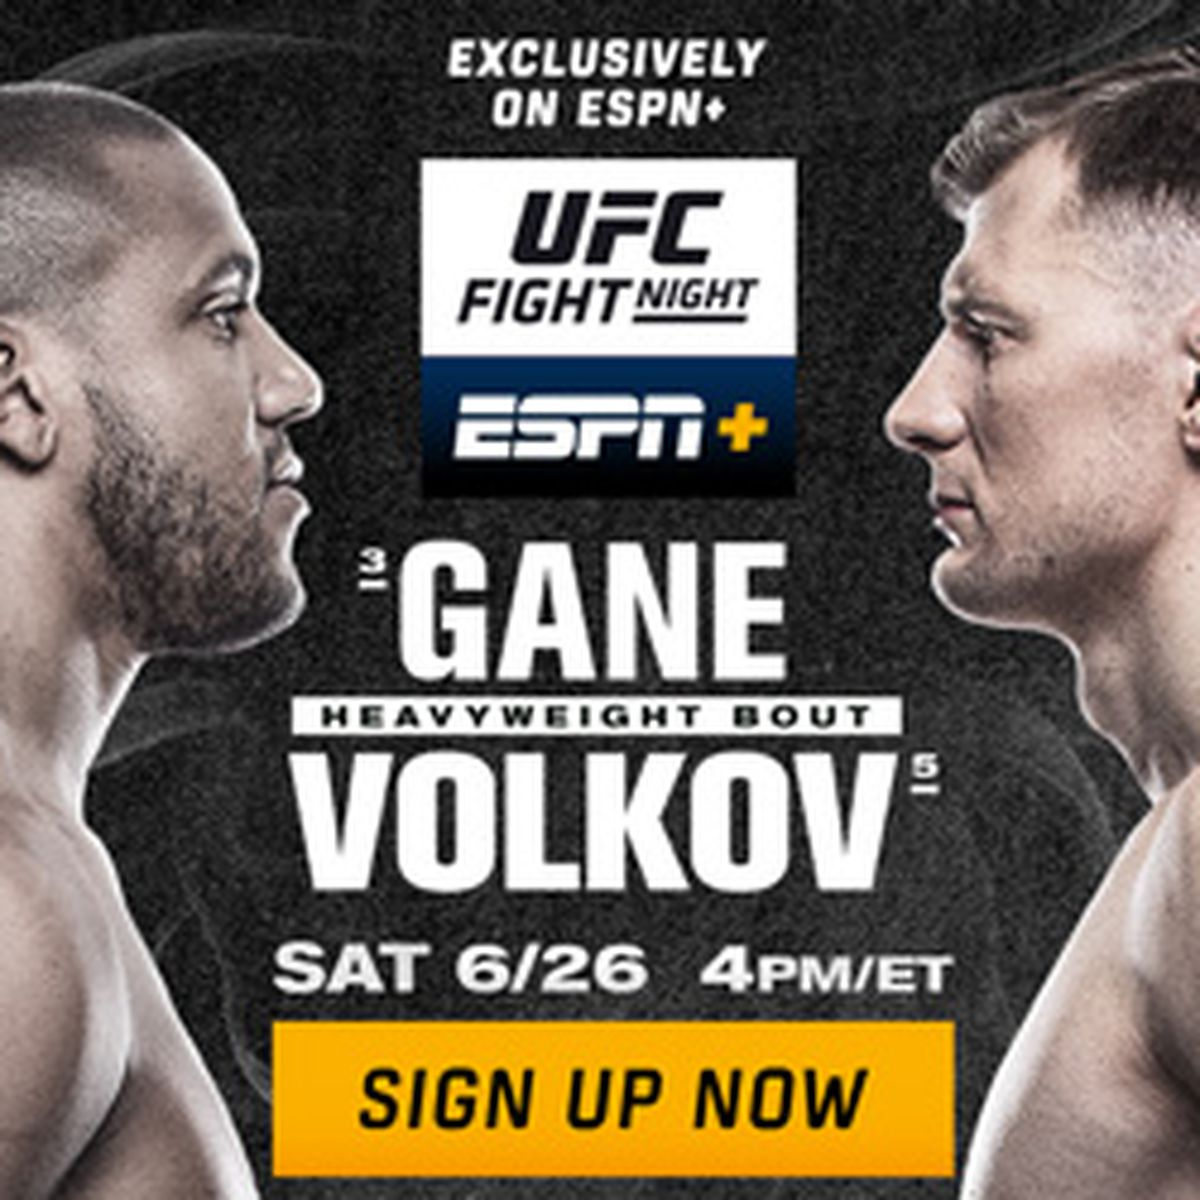 GANE The Fight Chamber | UFC and MMA news | Boxing news